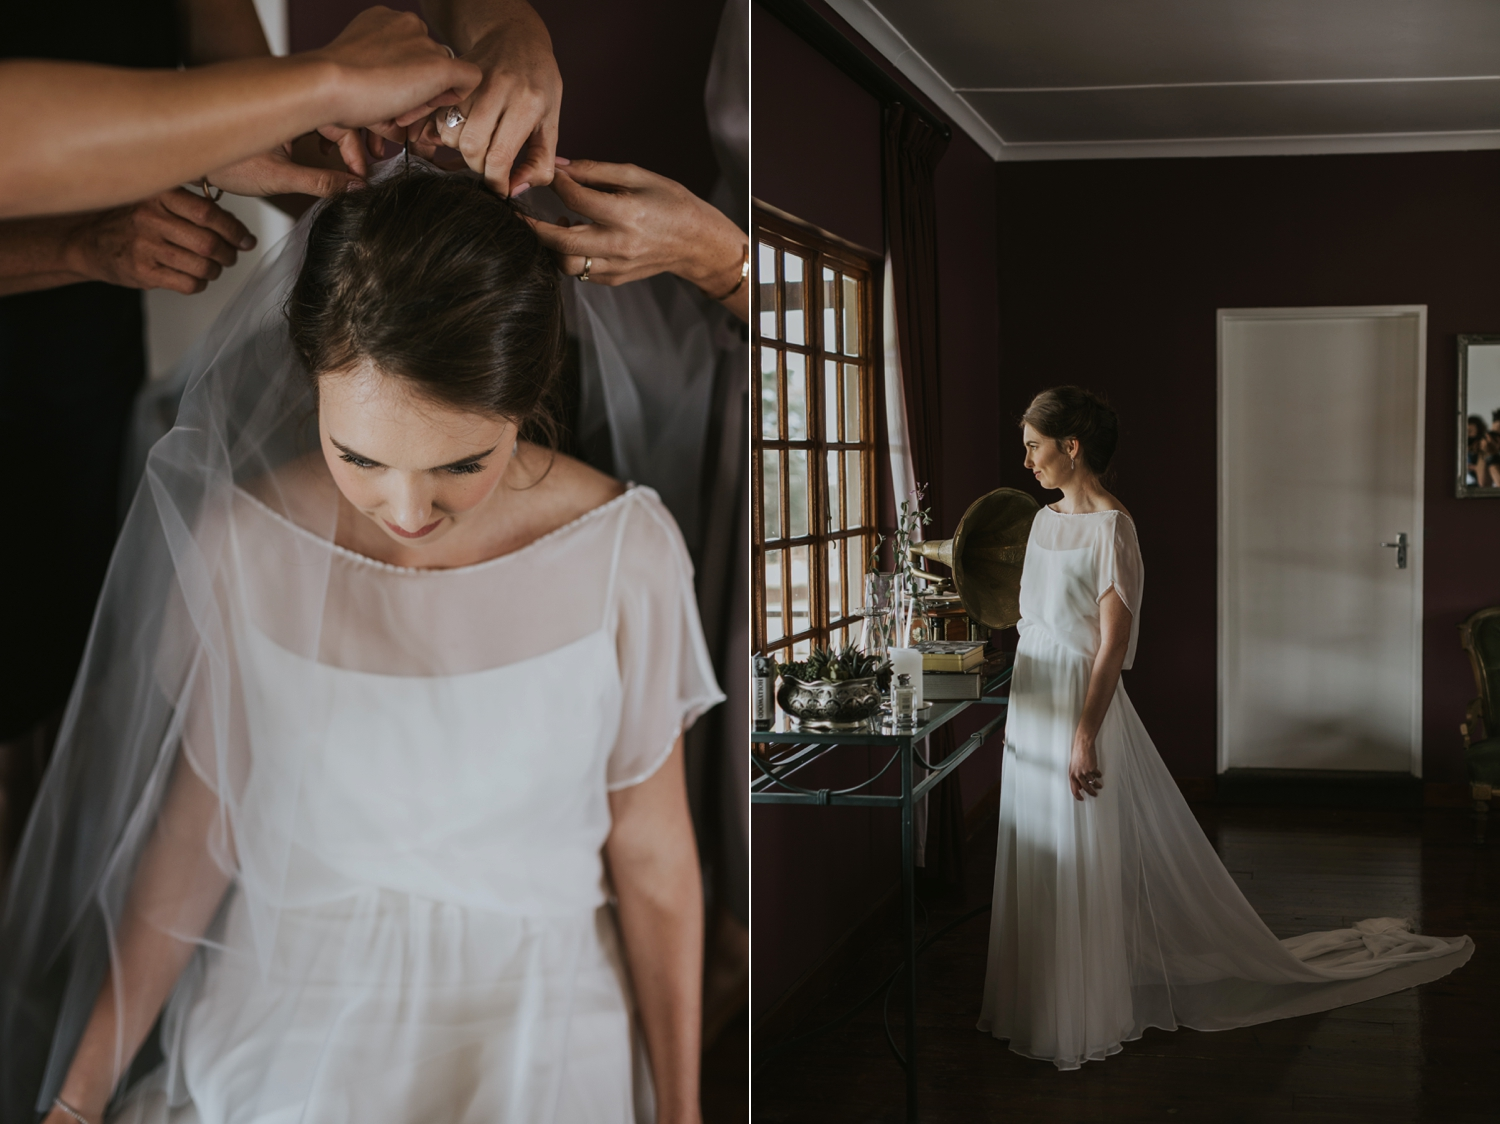 Mom Helping Bride Get Dressed In Simple Elegant Classic Layered Wedding Dress And Leather Shoes